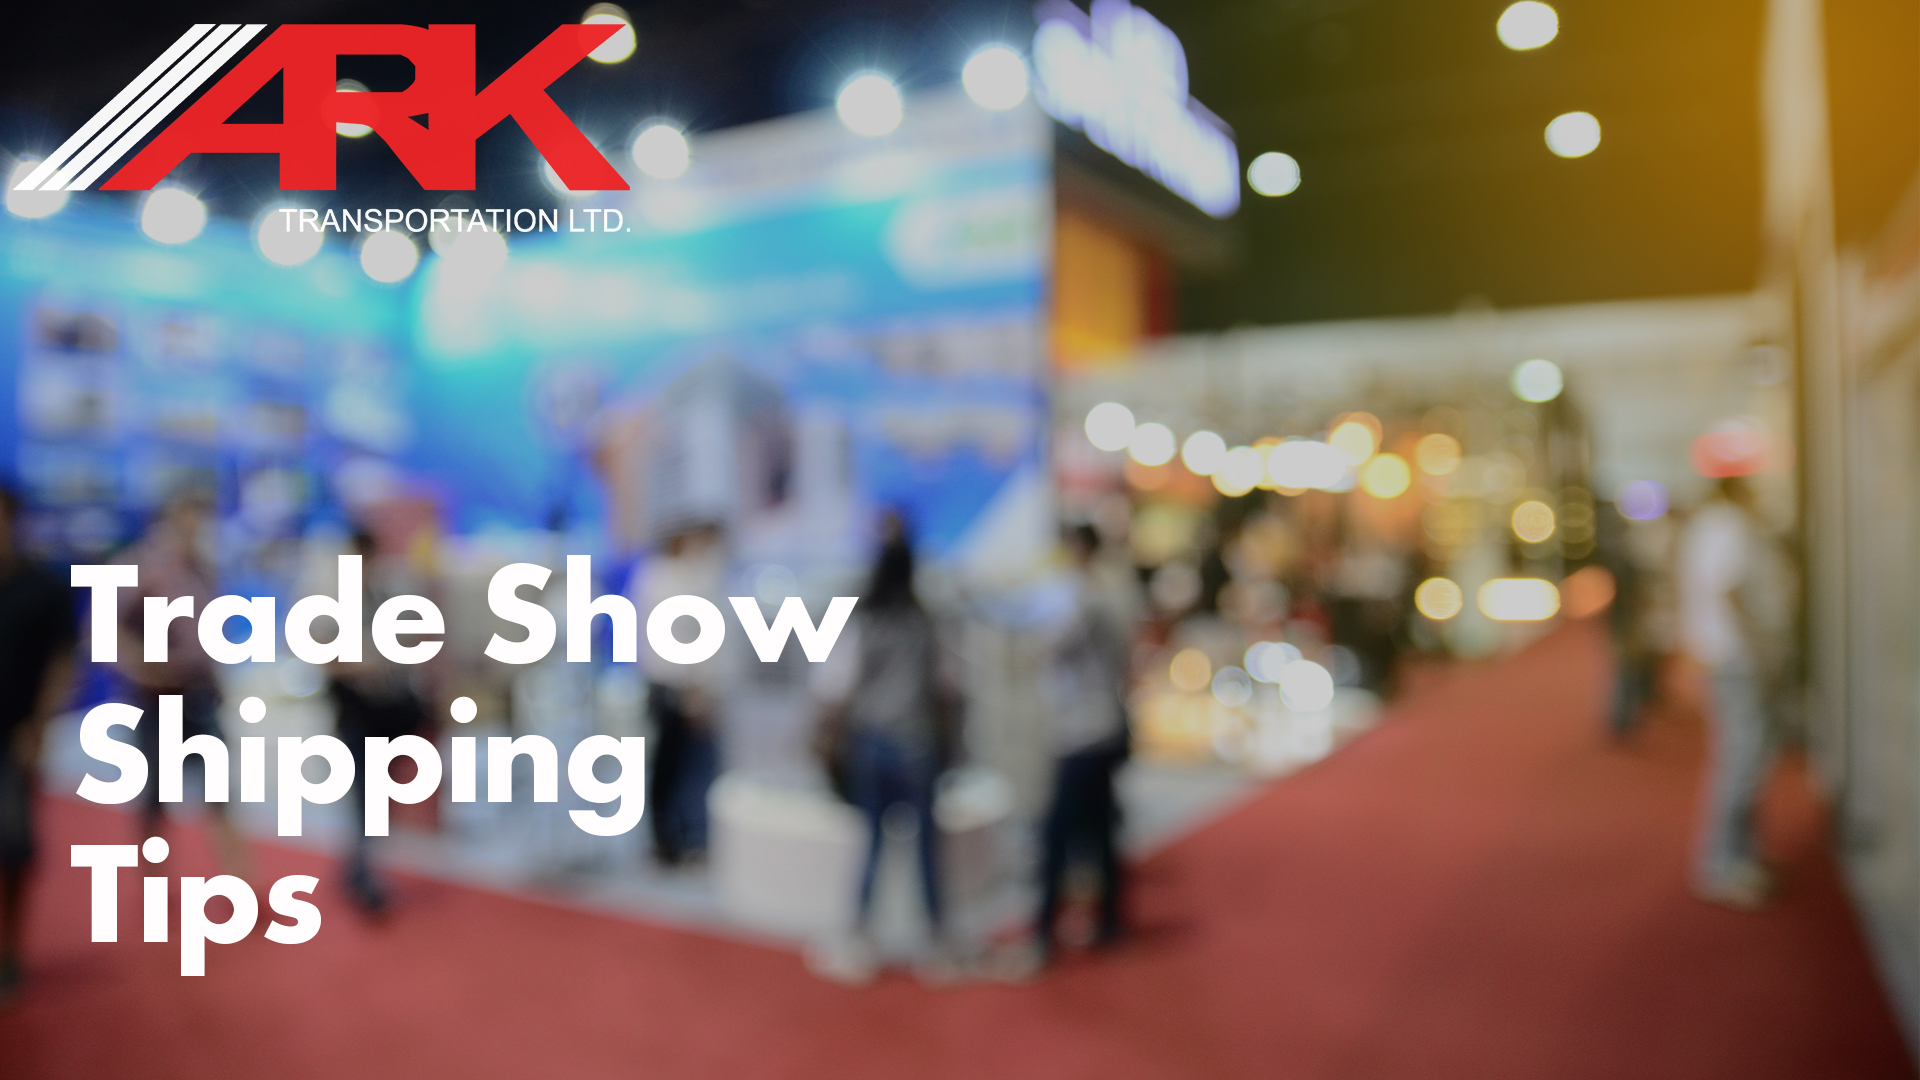 Tips for trade show shipping, know your show, know your freight